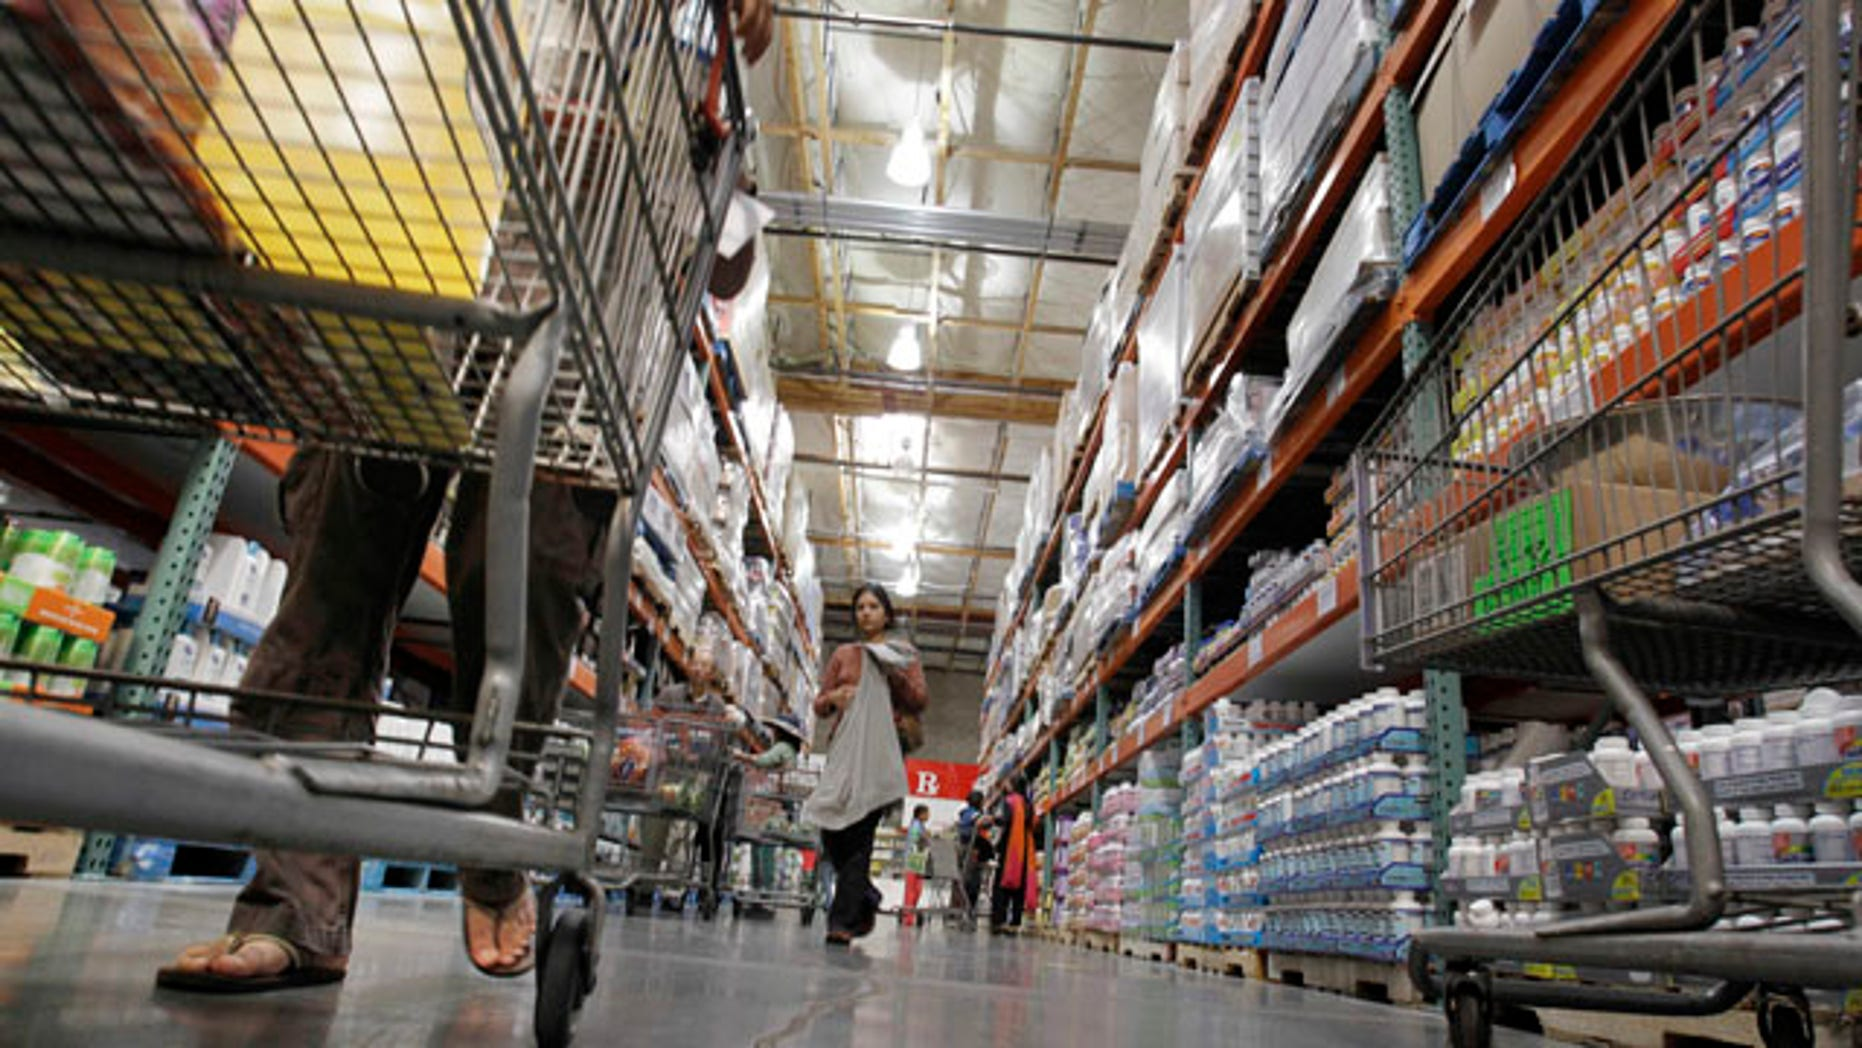 Nov. 6: Shoppers look at items at Costo in Mountain View, Calif. Inventories held at the wholesale level rose for the ninth consecutive month in September while sales rose for a third month.